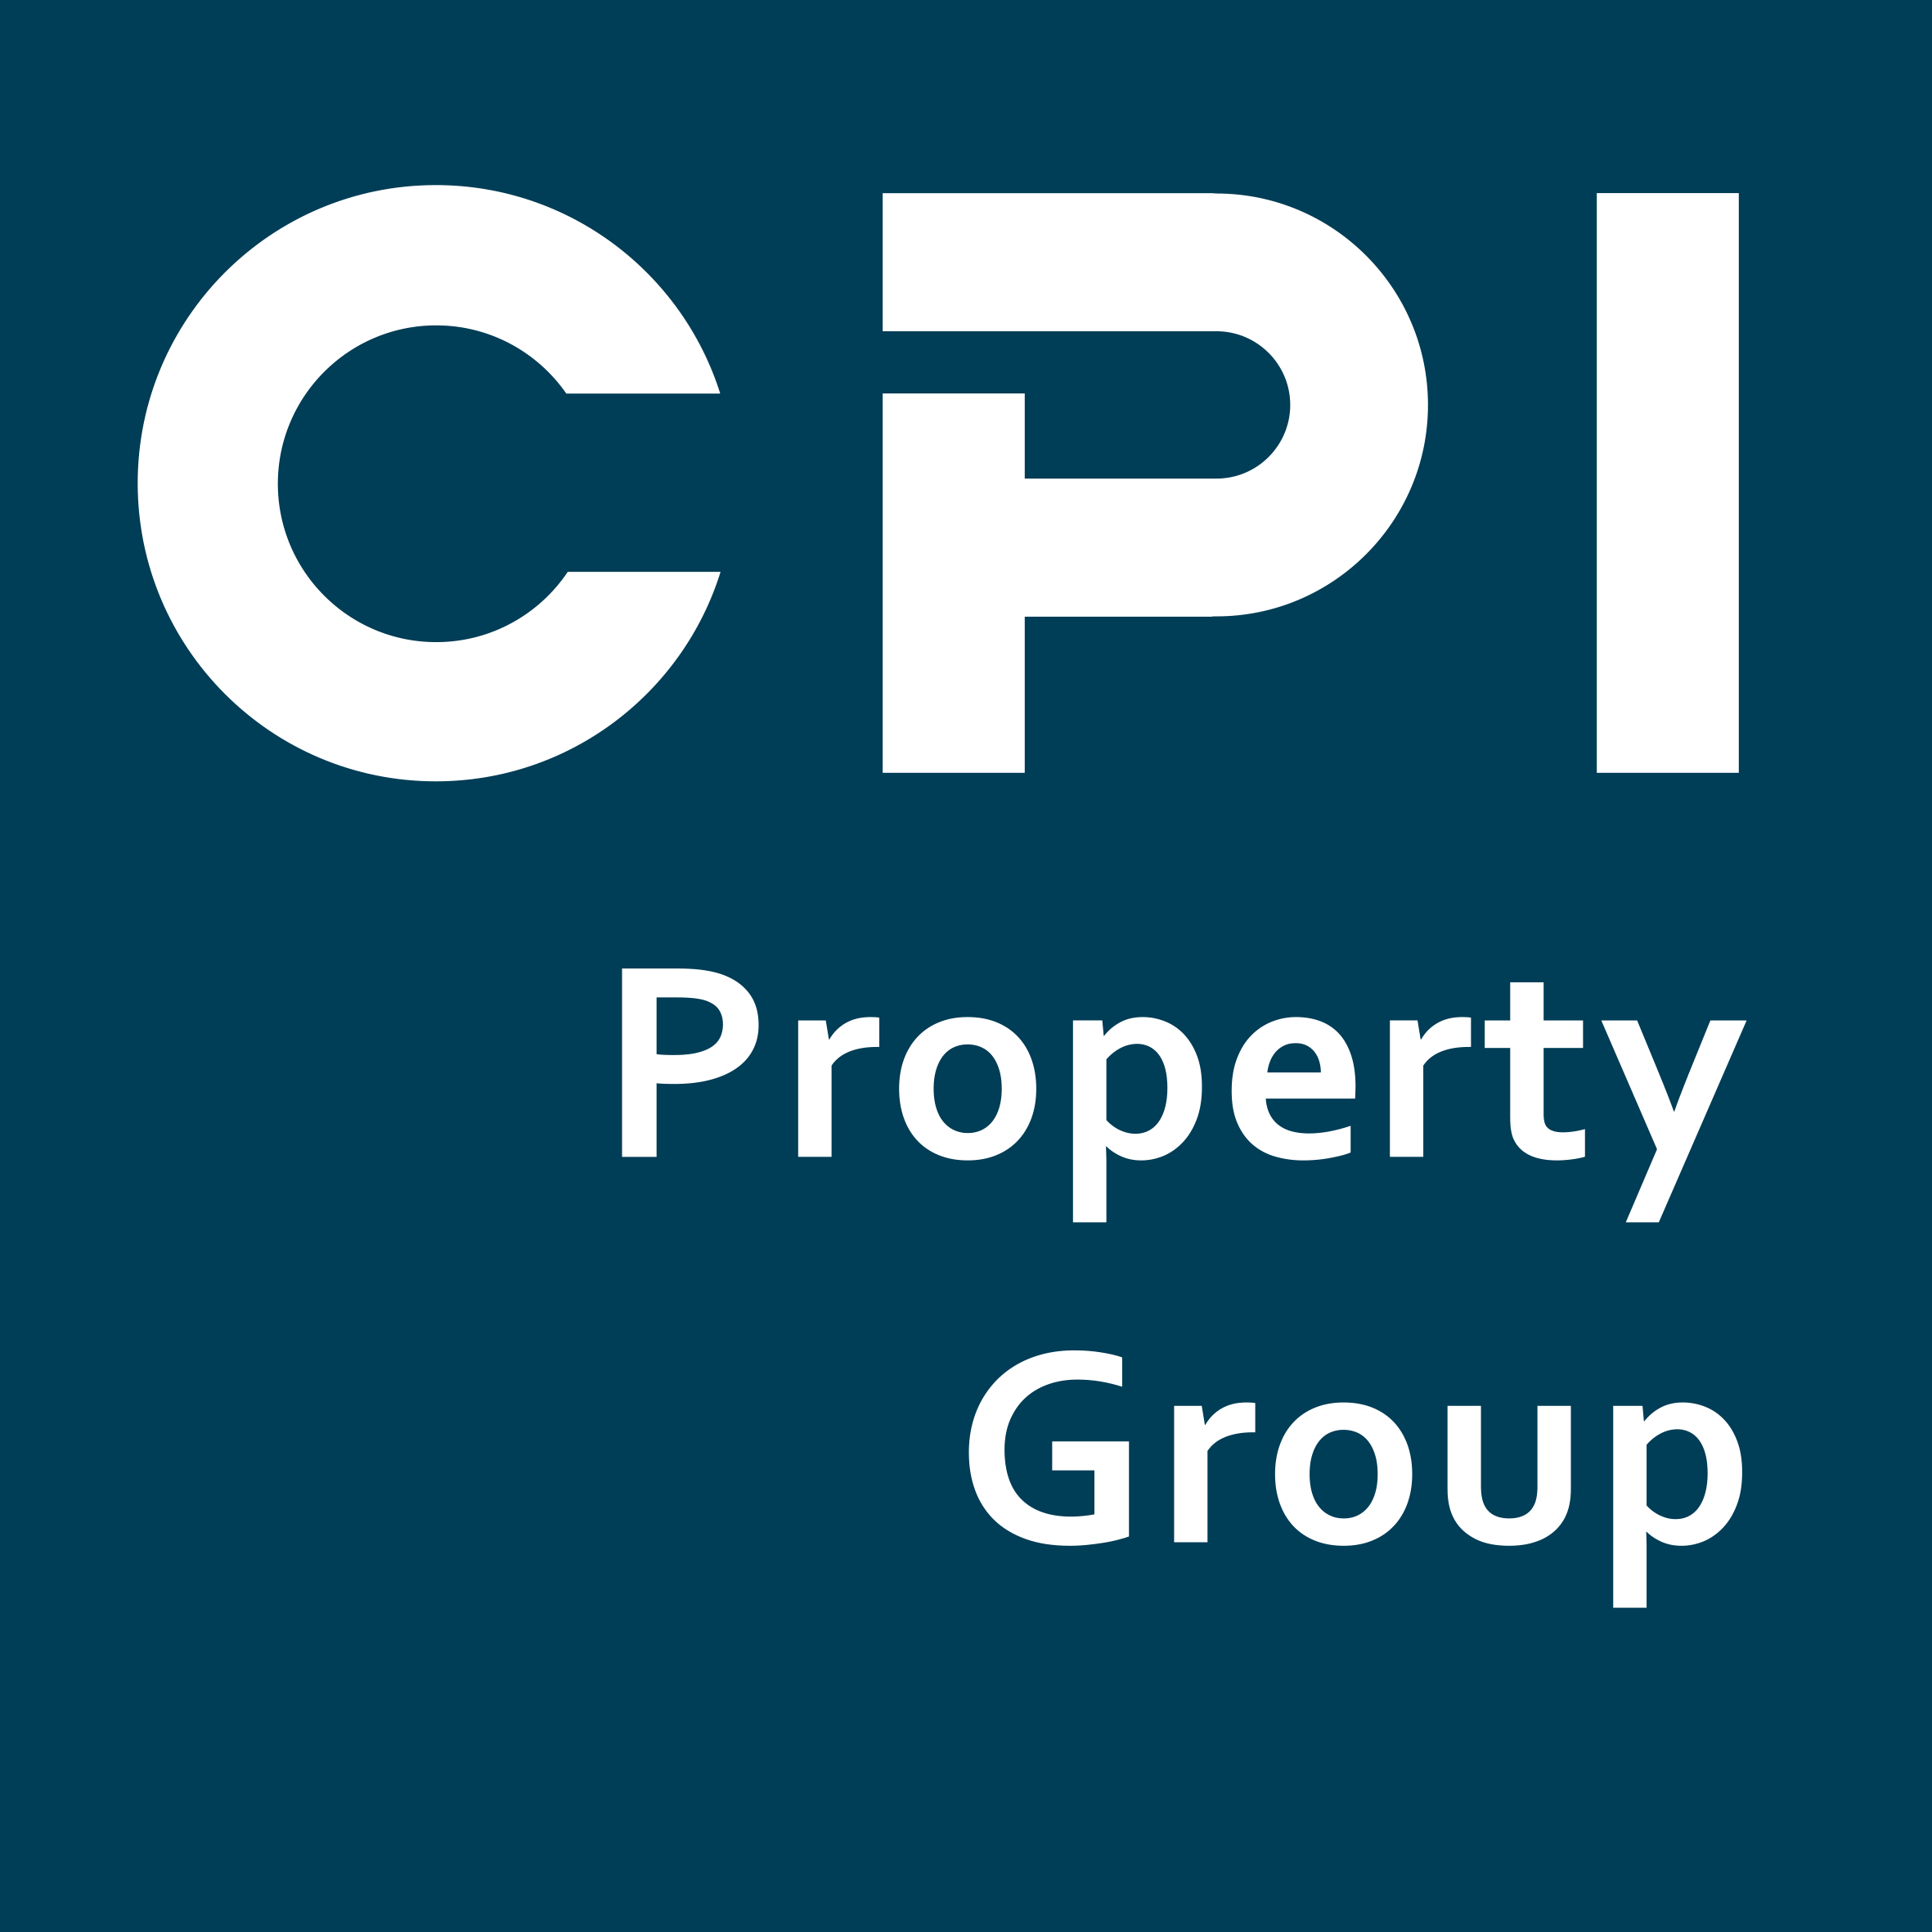 43 CPI Property Group